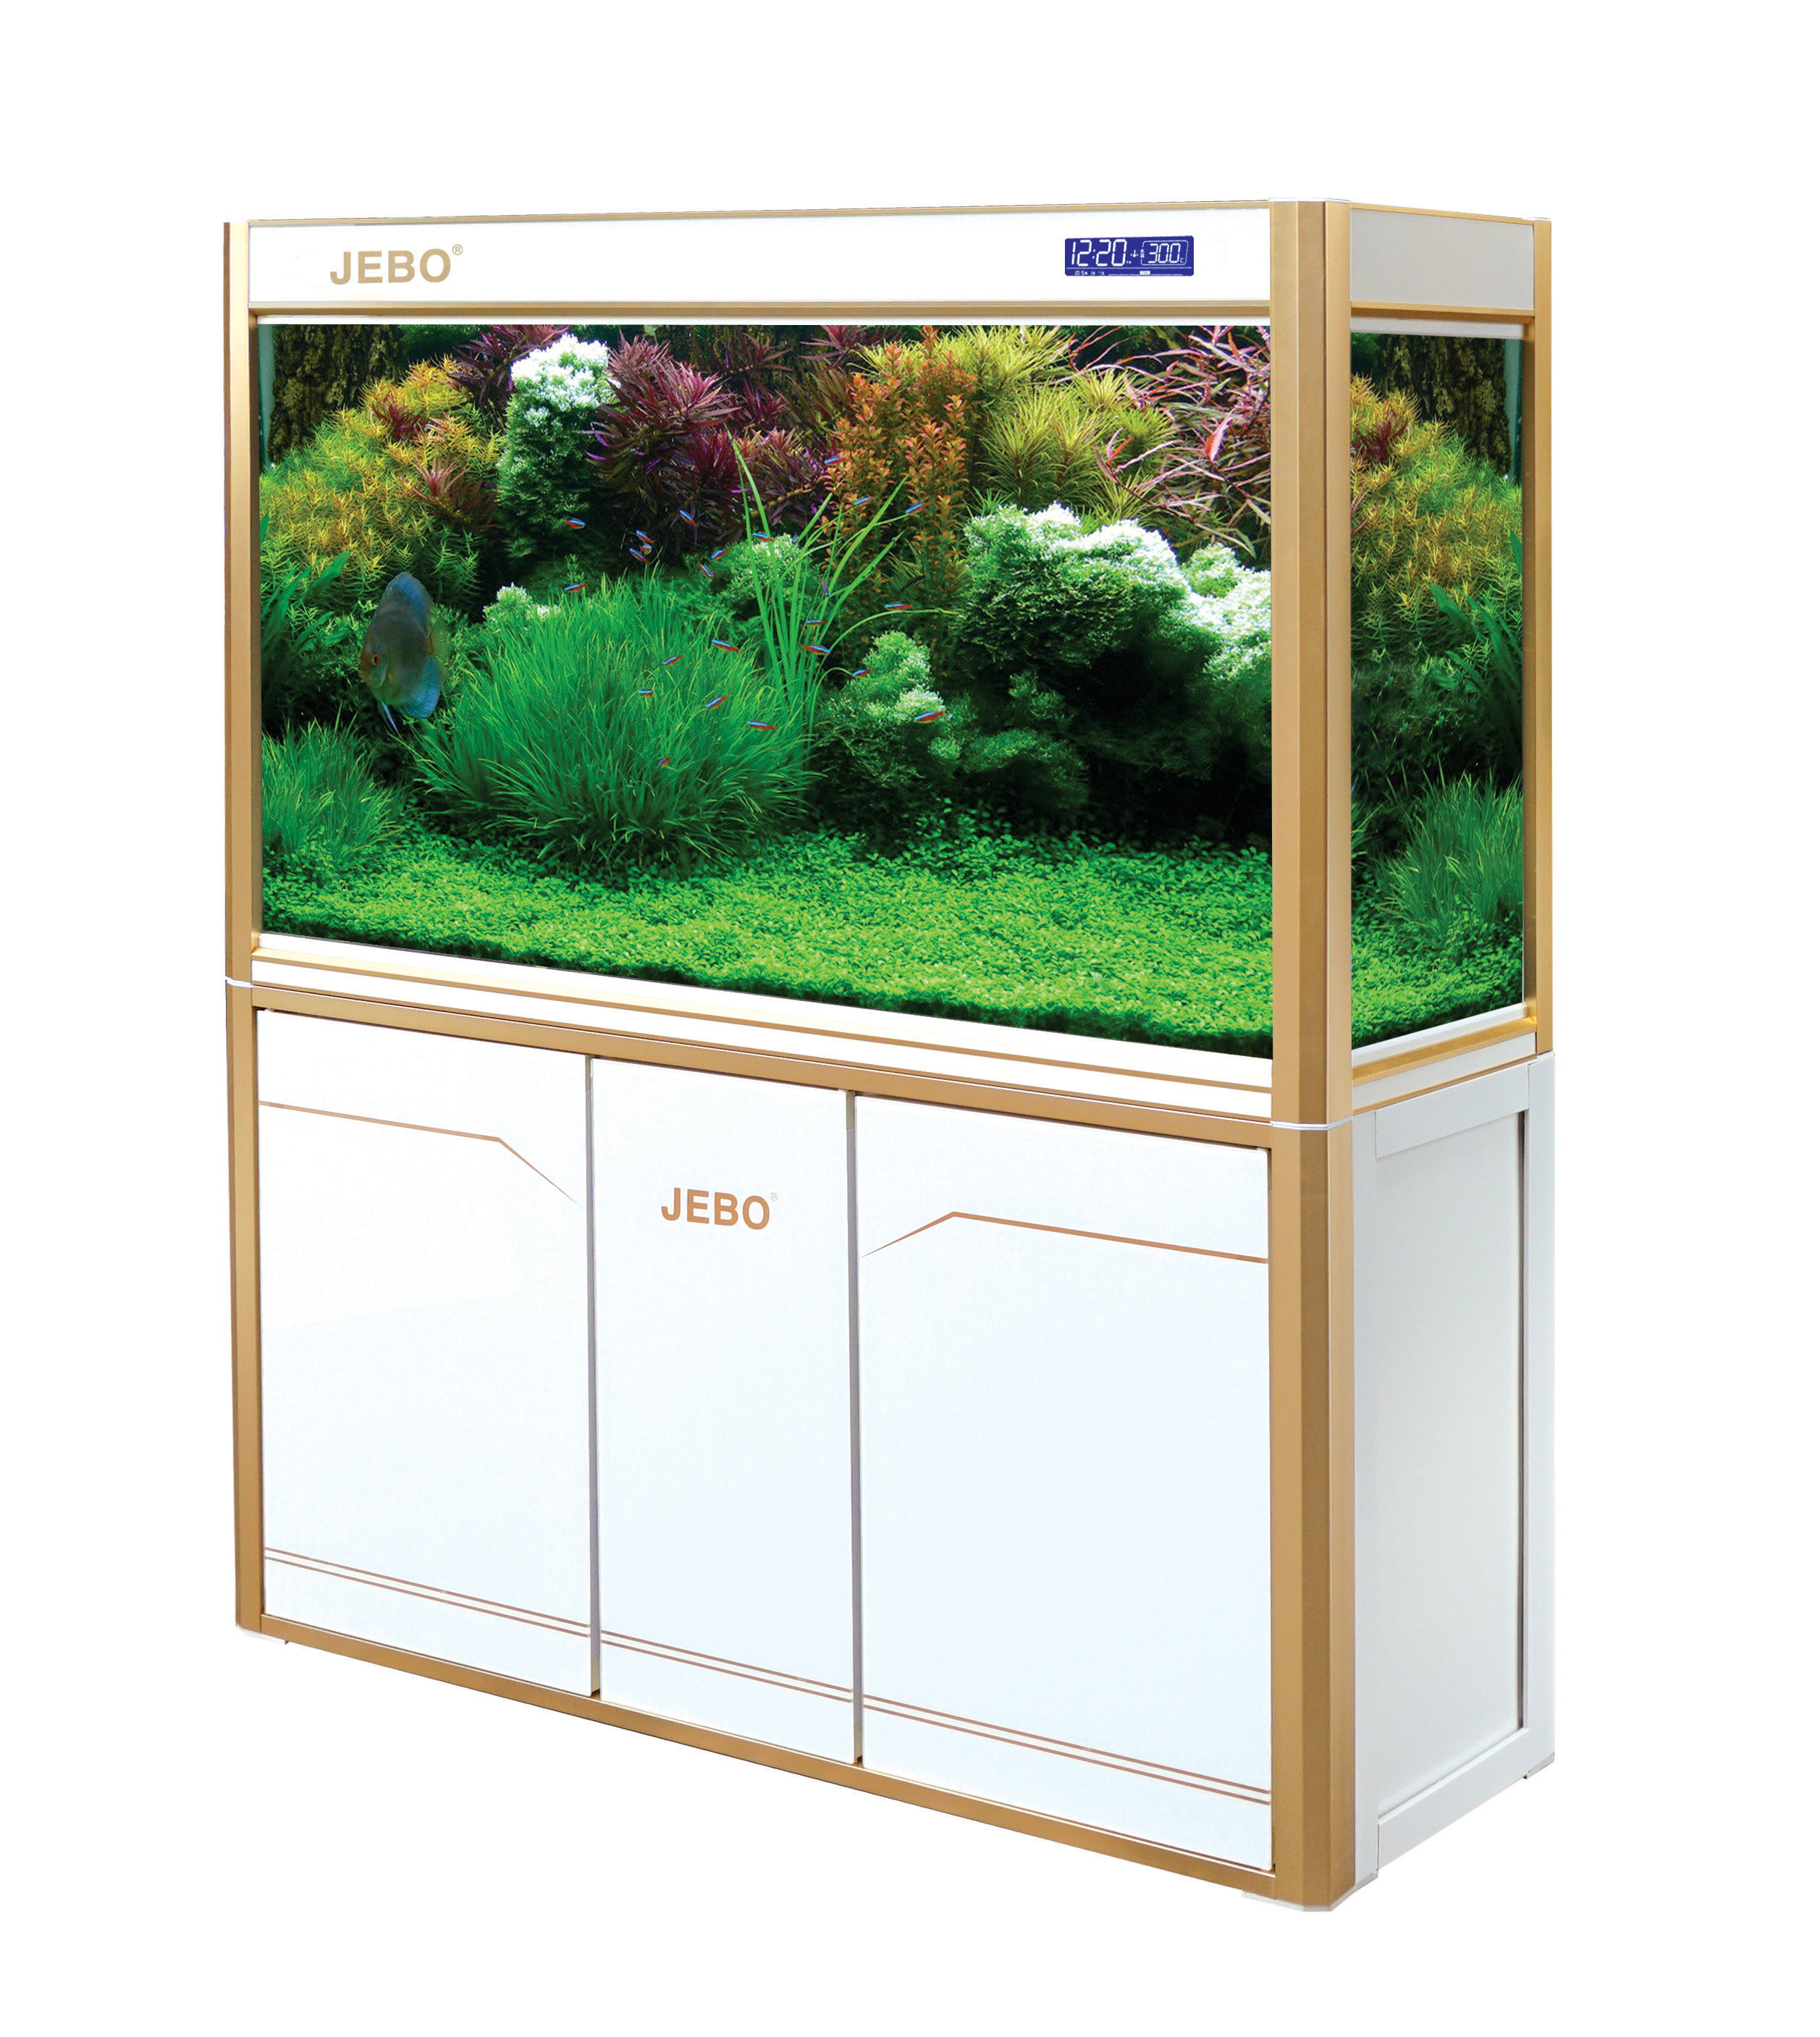 China Aquarium 120 Cm China Aquarium 120 Cm Manufacturers and